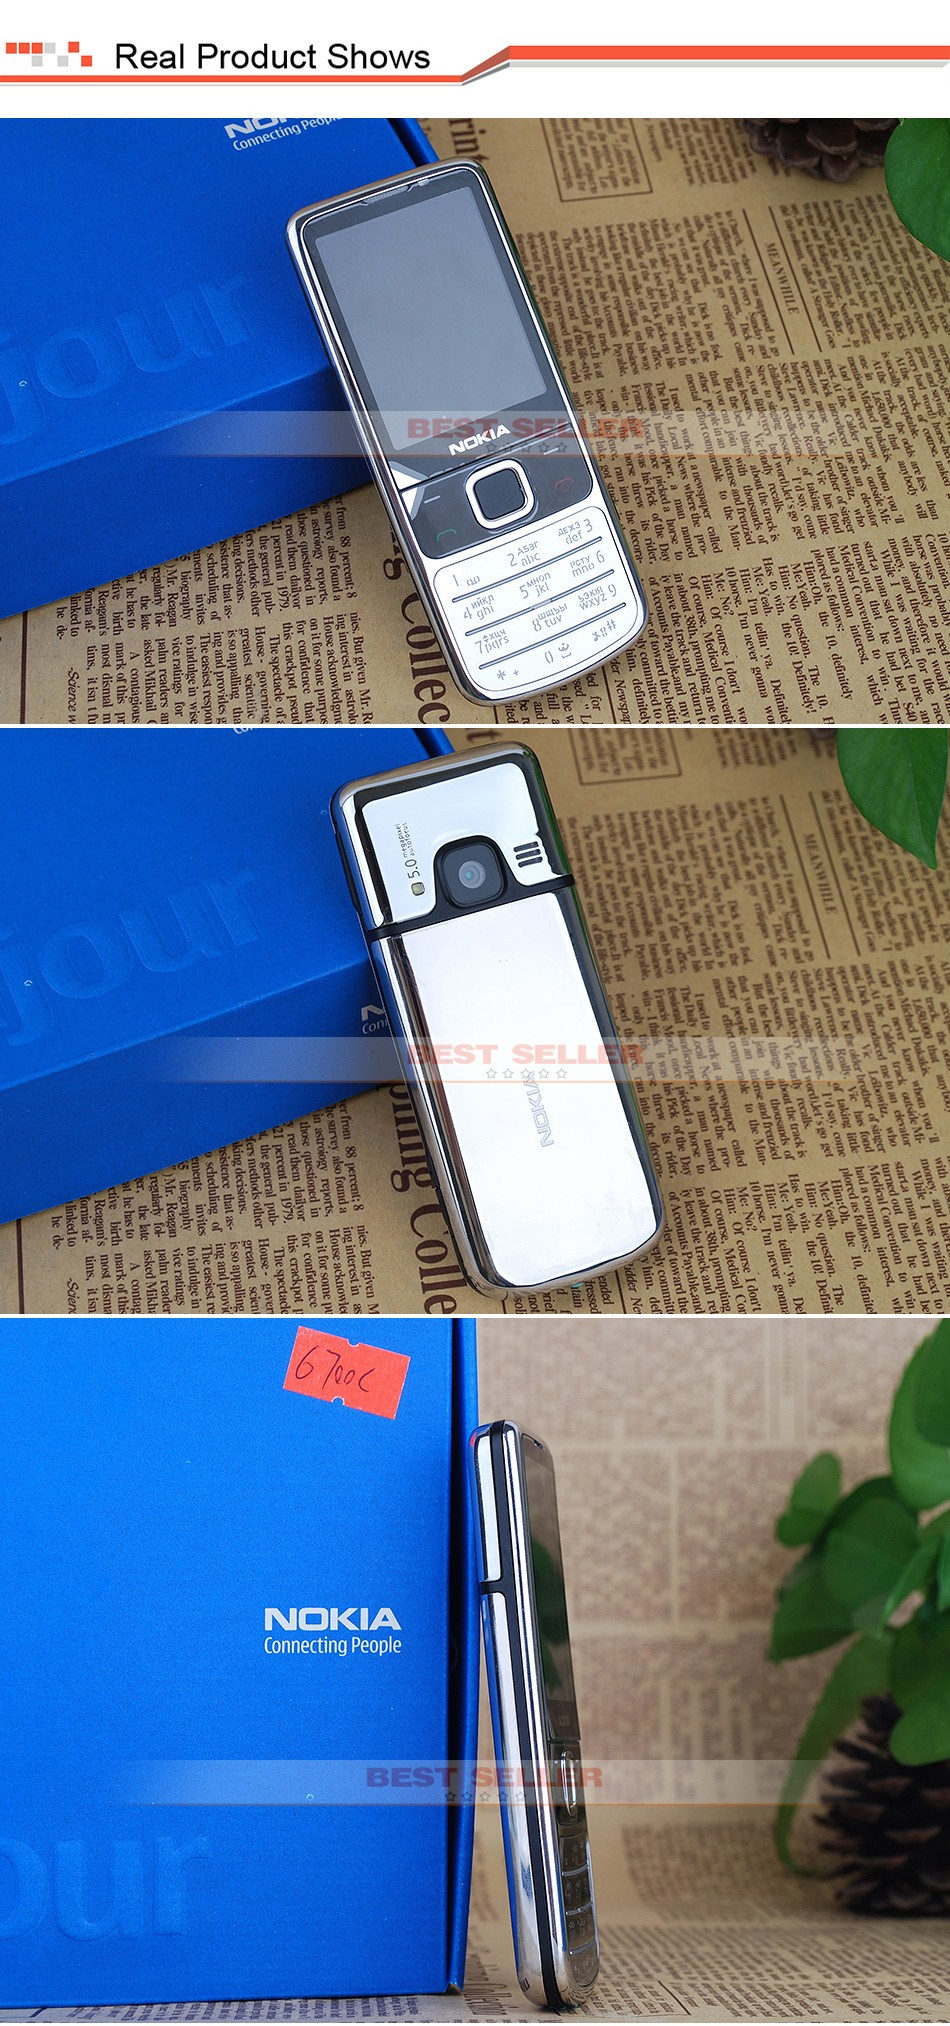 Refurbished phone 6700C Cell Phone Unlocked Nokia 6700 Classic GSM 3G Gps Mobile Phone 5MP Camera gold 4